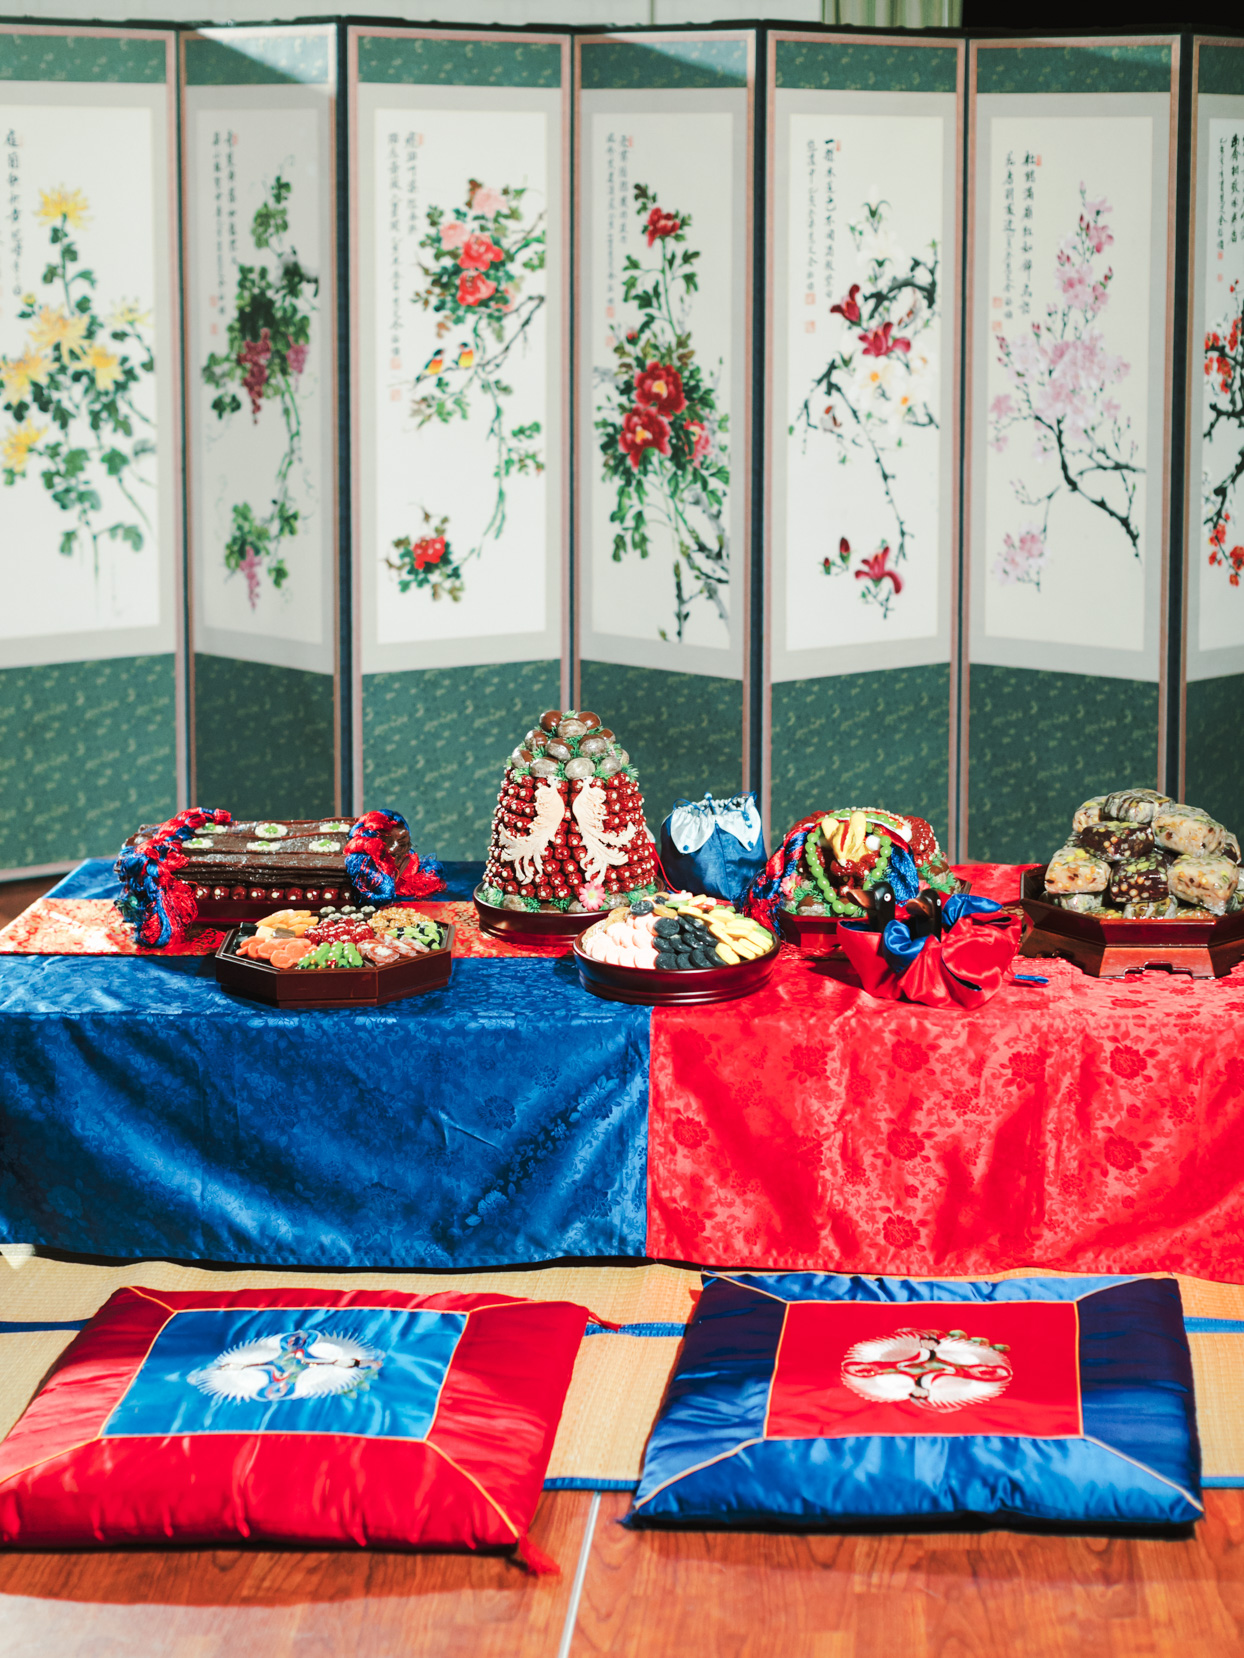 wedding paebaek ceremony with red and blue table and cushions